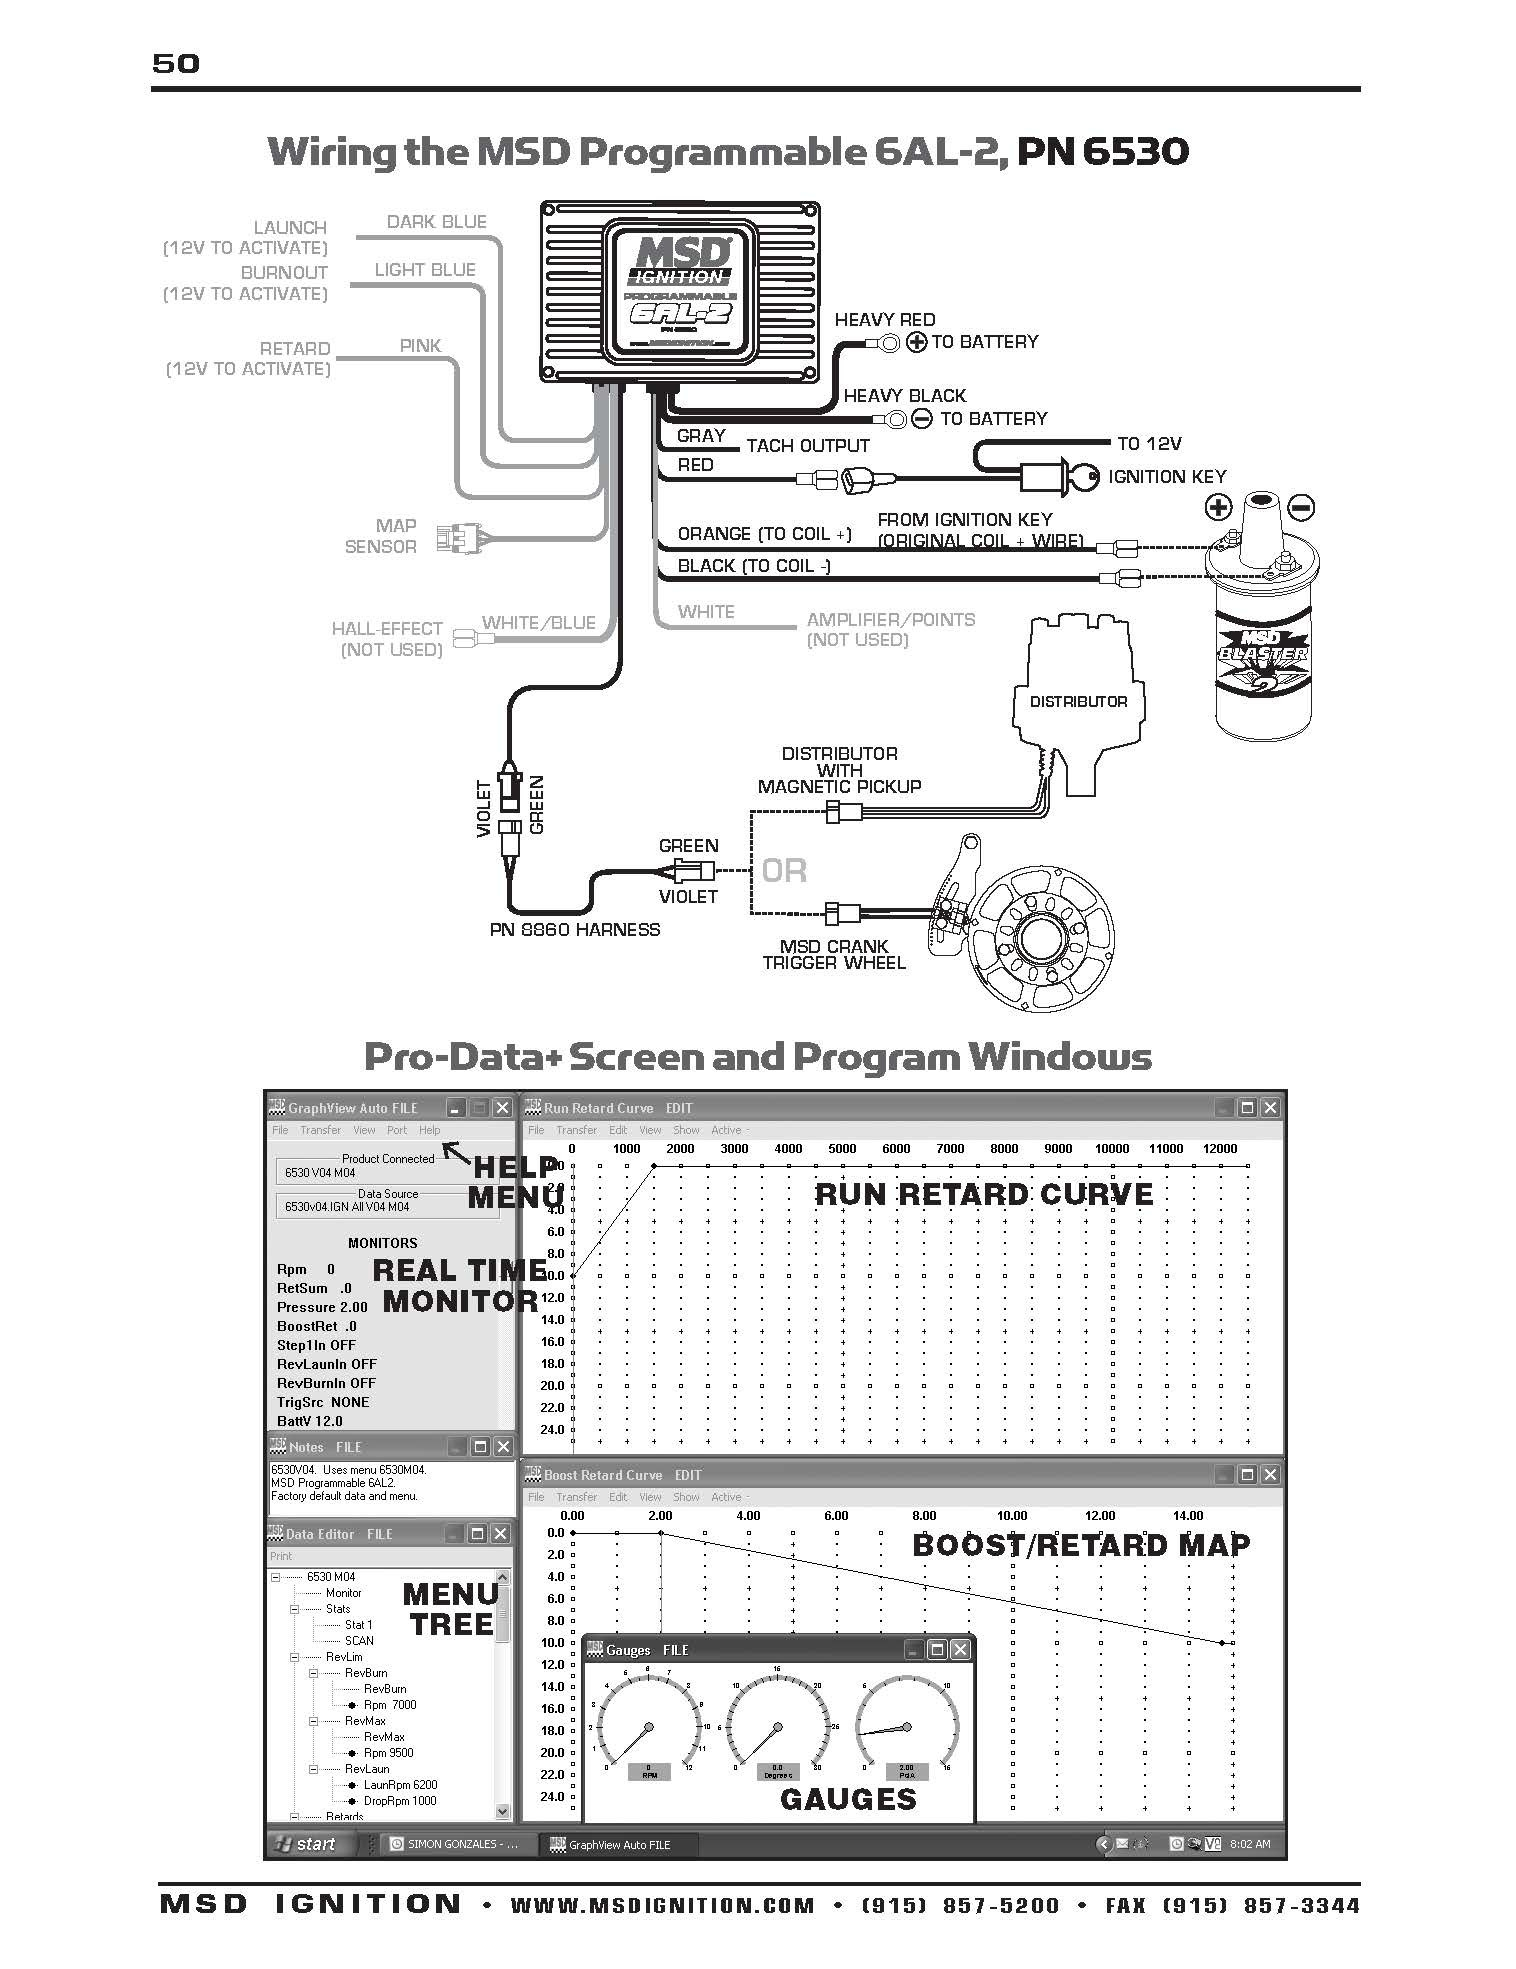 12 volt relay with toggle switch wiring diagrams free download msd ignition 6al wiring diagram | free wiring diagram #15